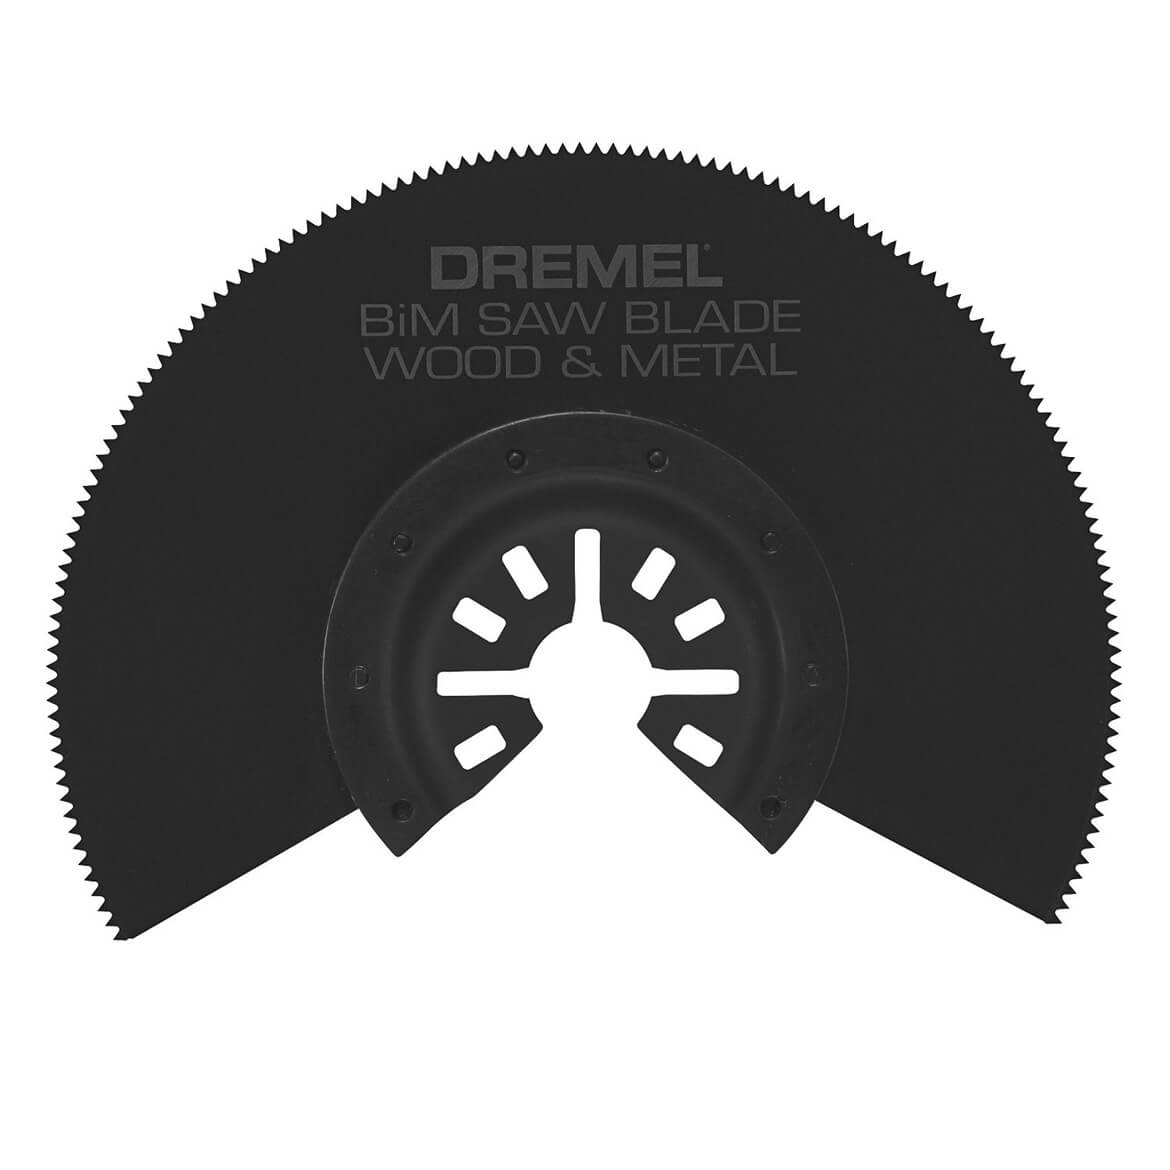 Dremel MM452 Universal Wood/Metal/Plastic Multi-Max Flush